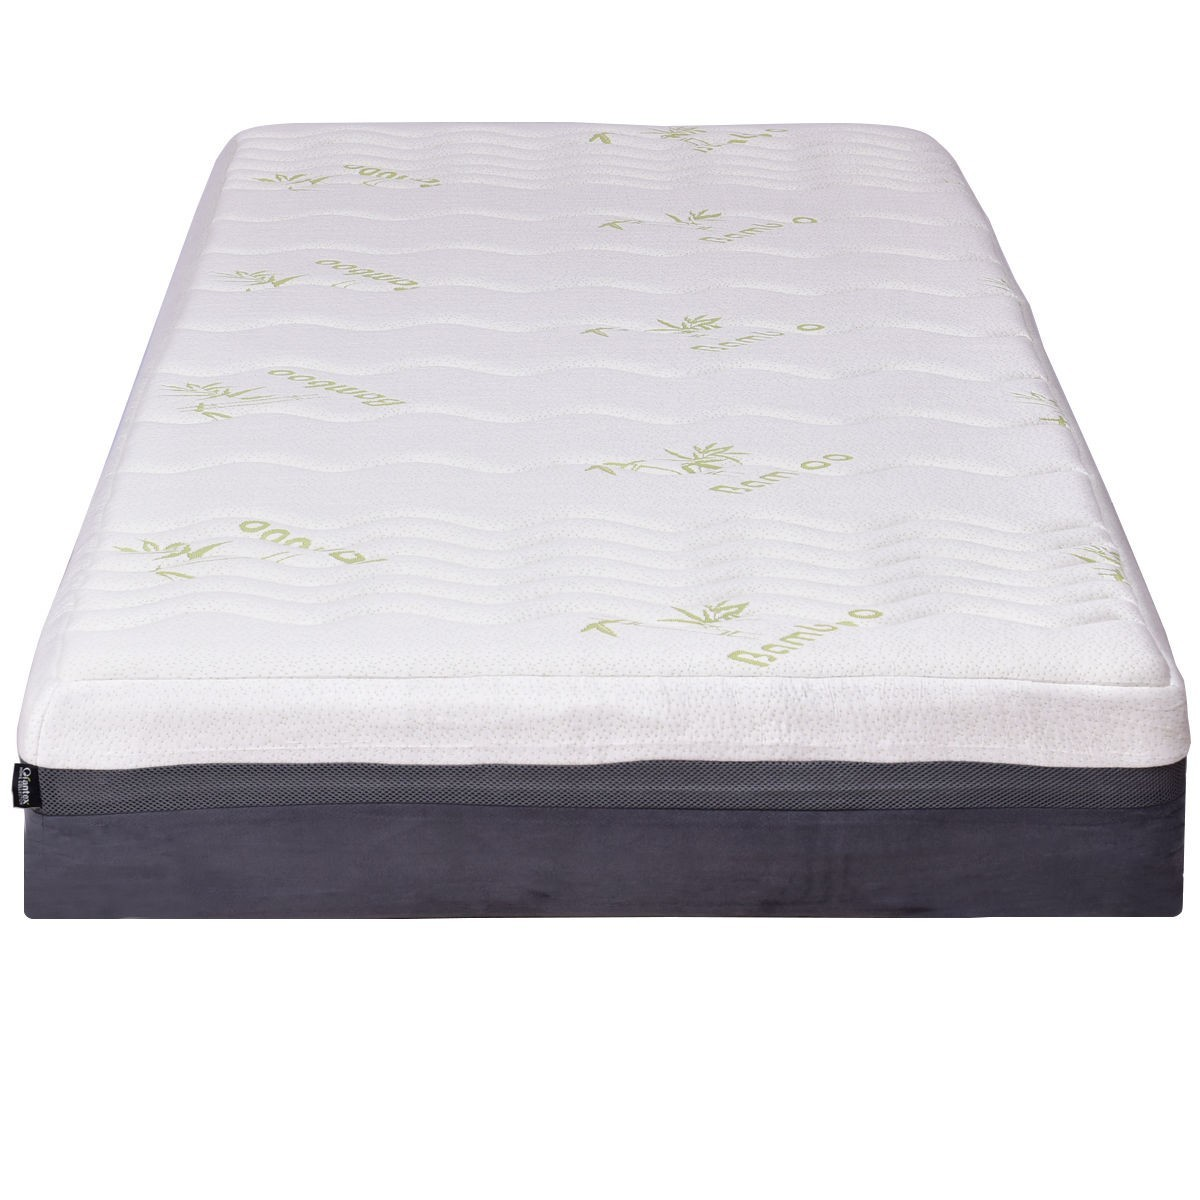 "Four Size 10"" Memory Foam Bamboo Fiber Mattress - California King Size"